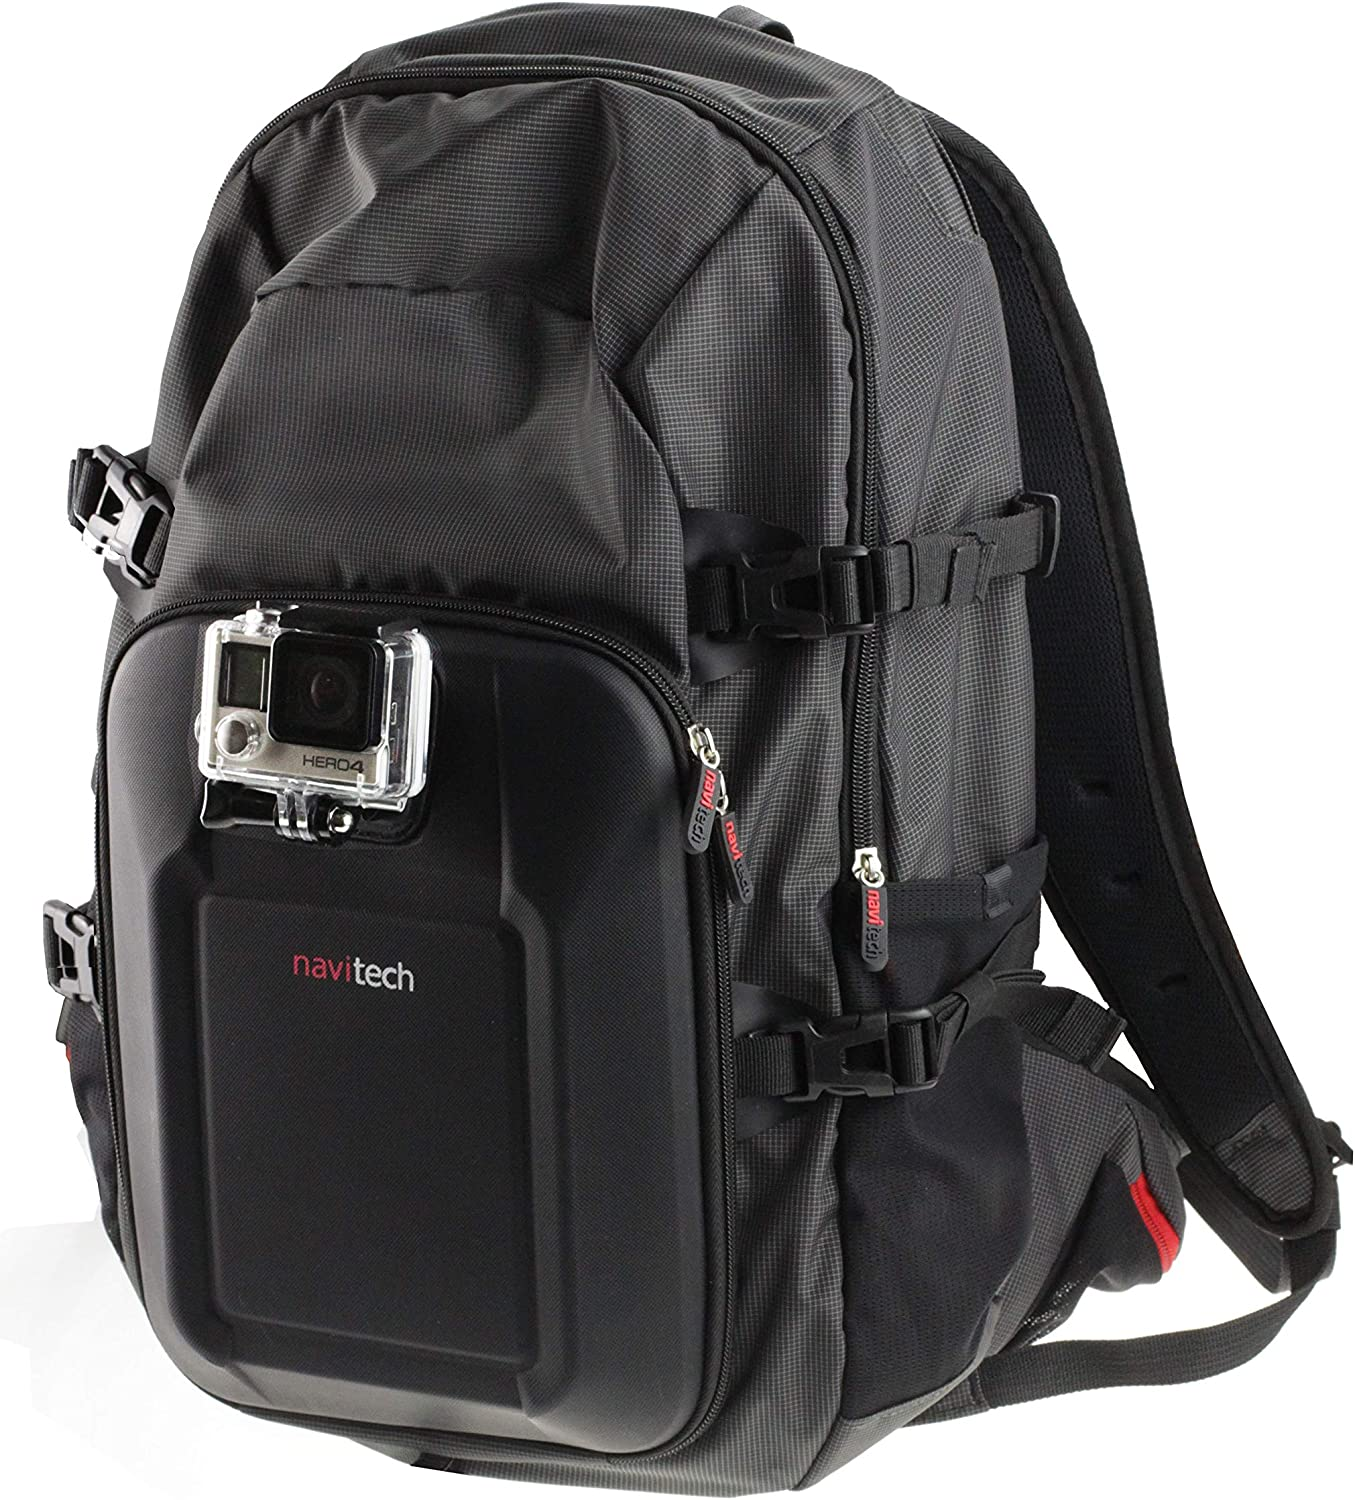 Navitech Action Camera Backpack 2021new shipping free shipping Blue Integra Case Sale price Storage with